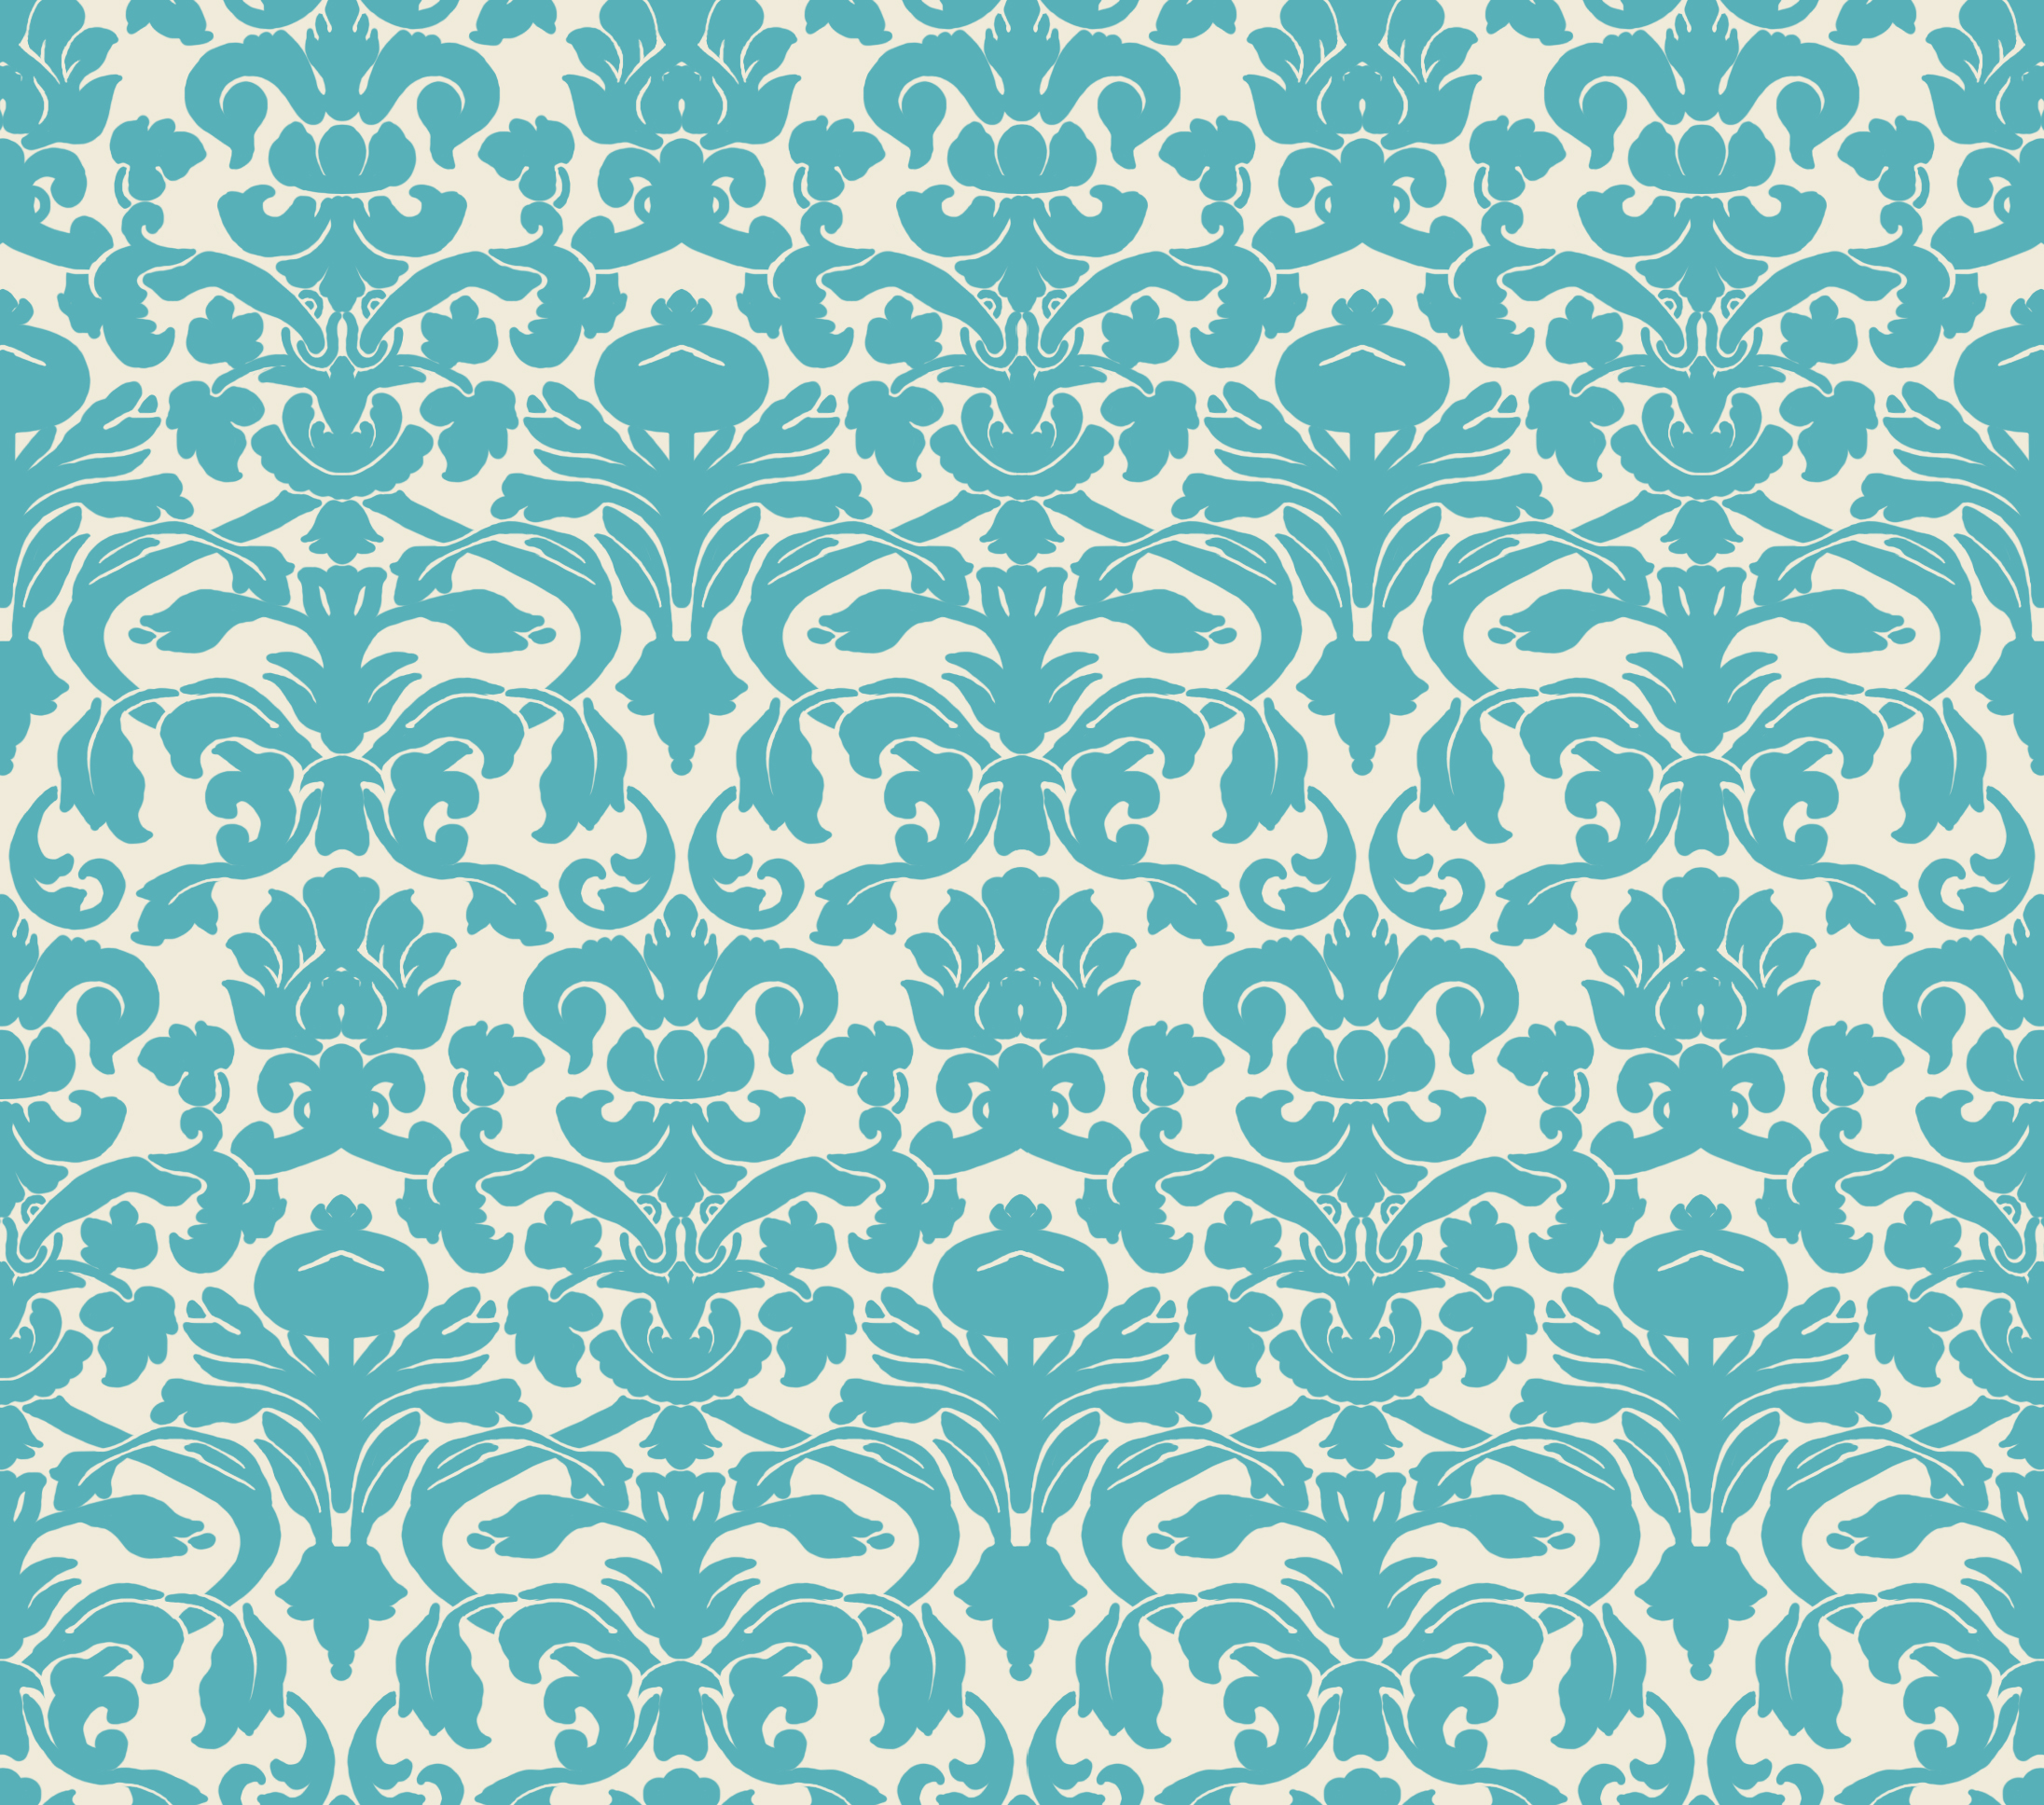 damask wallpaper by insurrectionx 2192x1936